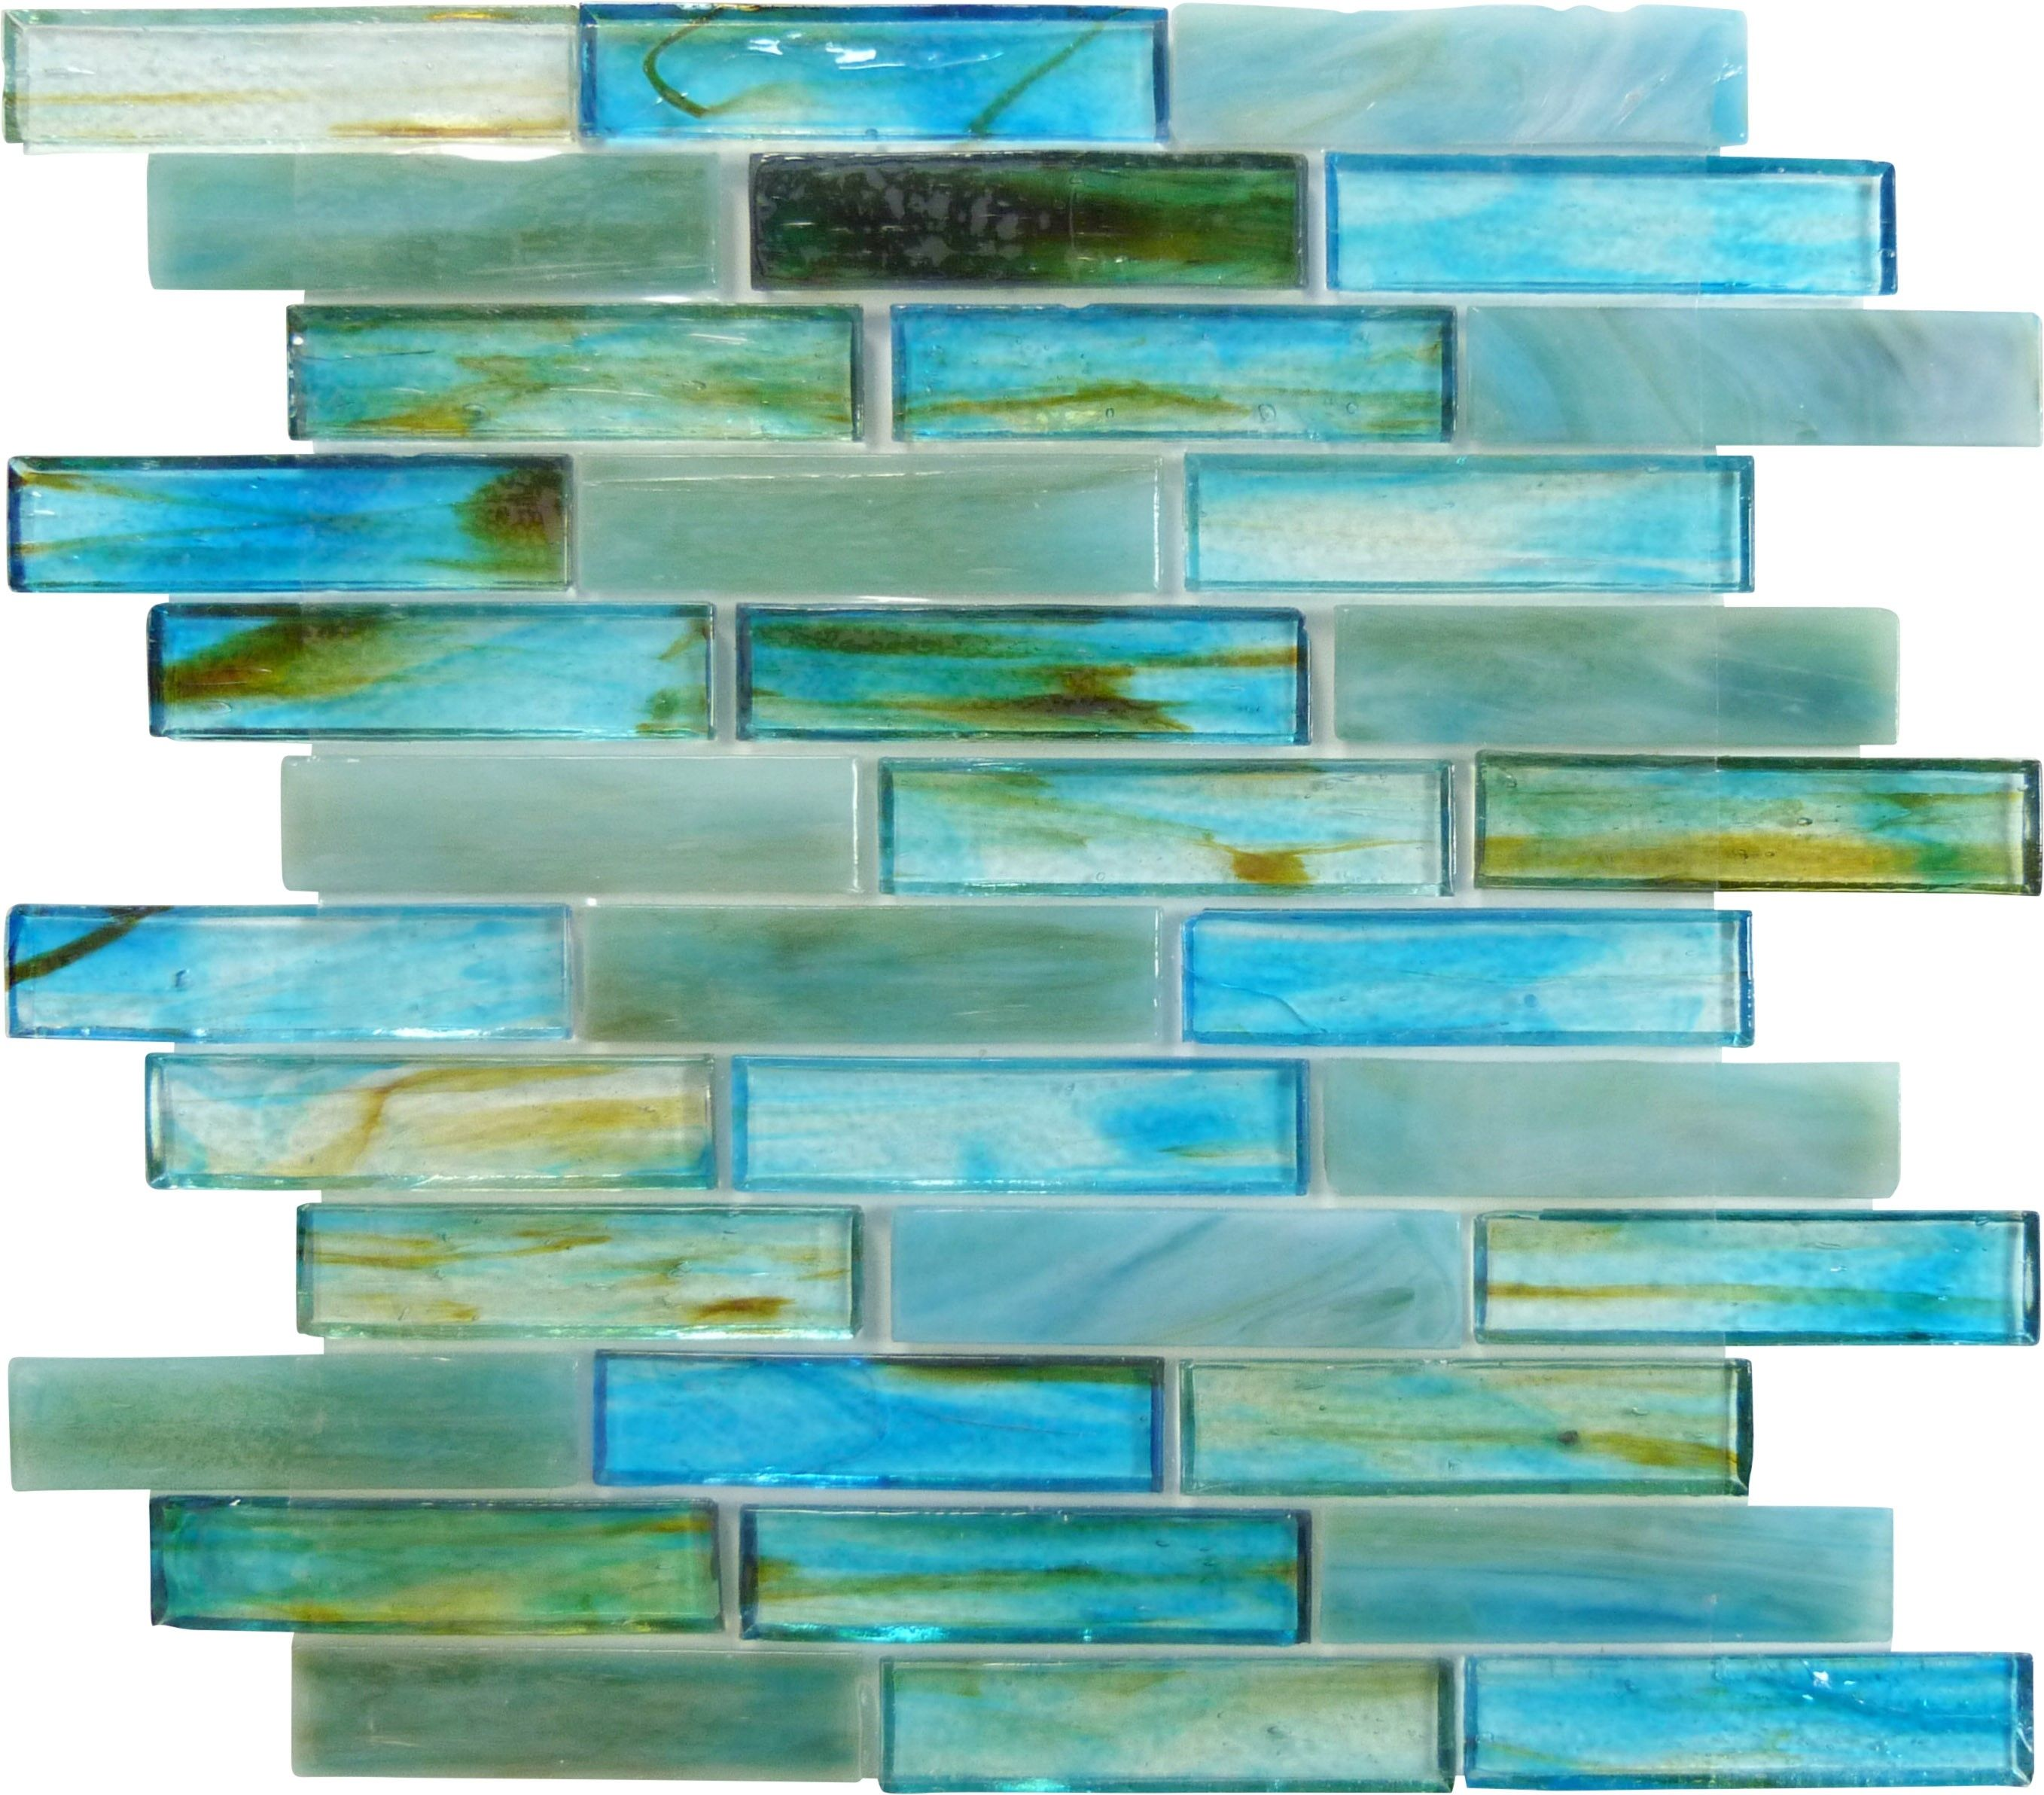 This 1 X 4 Green And Turquoise Glass Tile Replicates The Classic Brick Wall Layout Forming An Appealing Co Sea Glass Tile Turquoise Glass Tiles Glass Tile